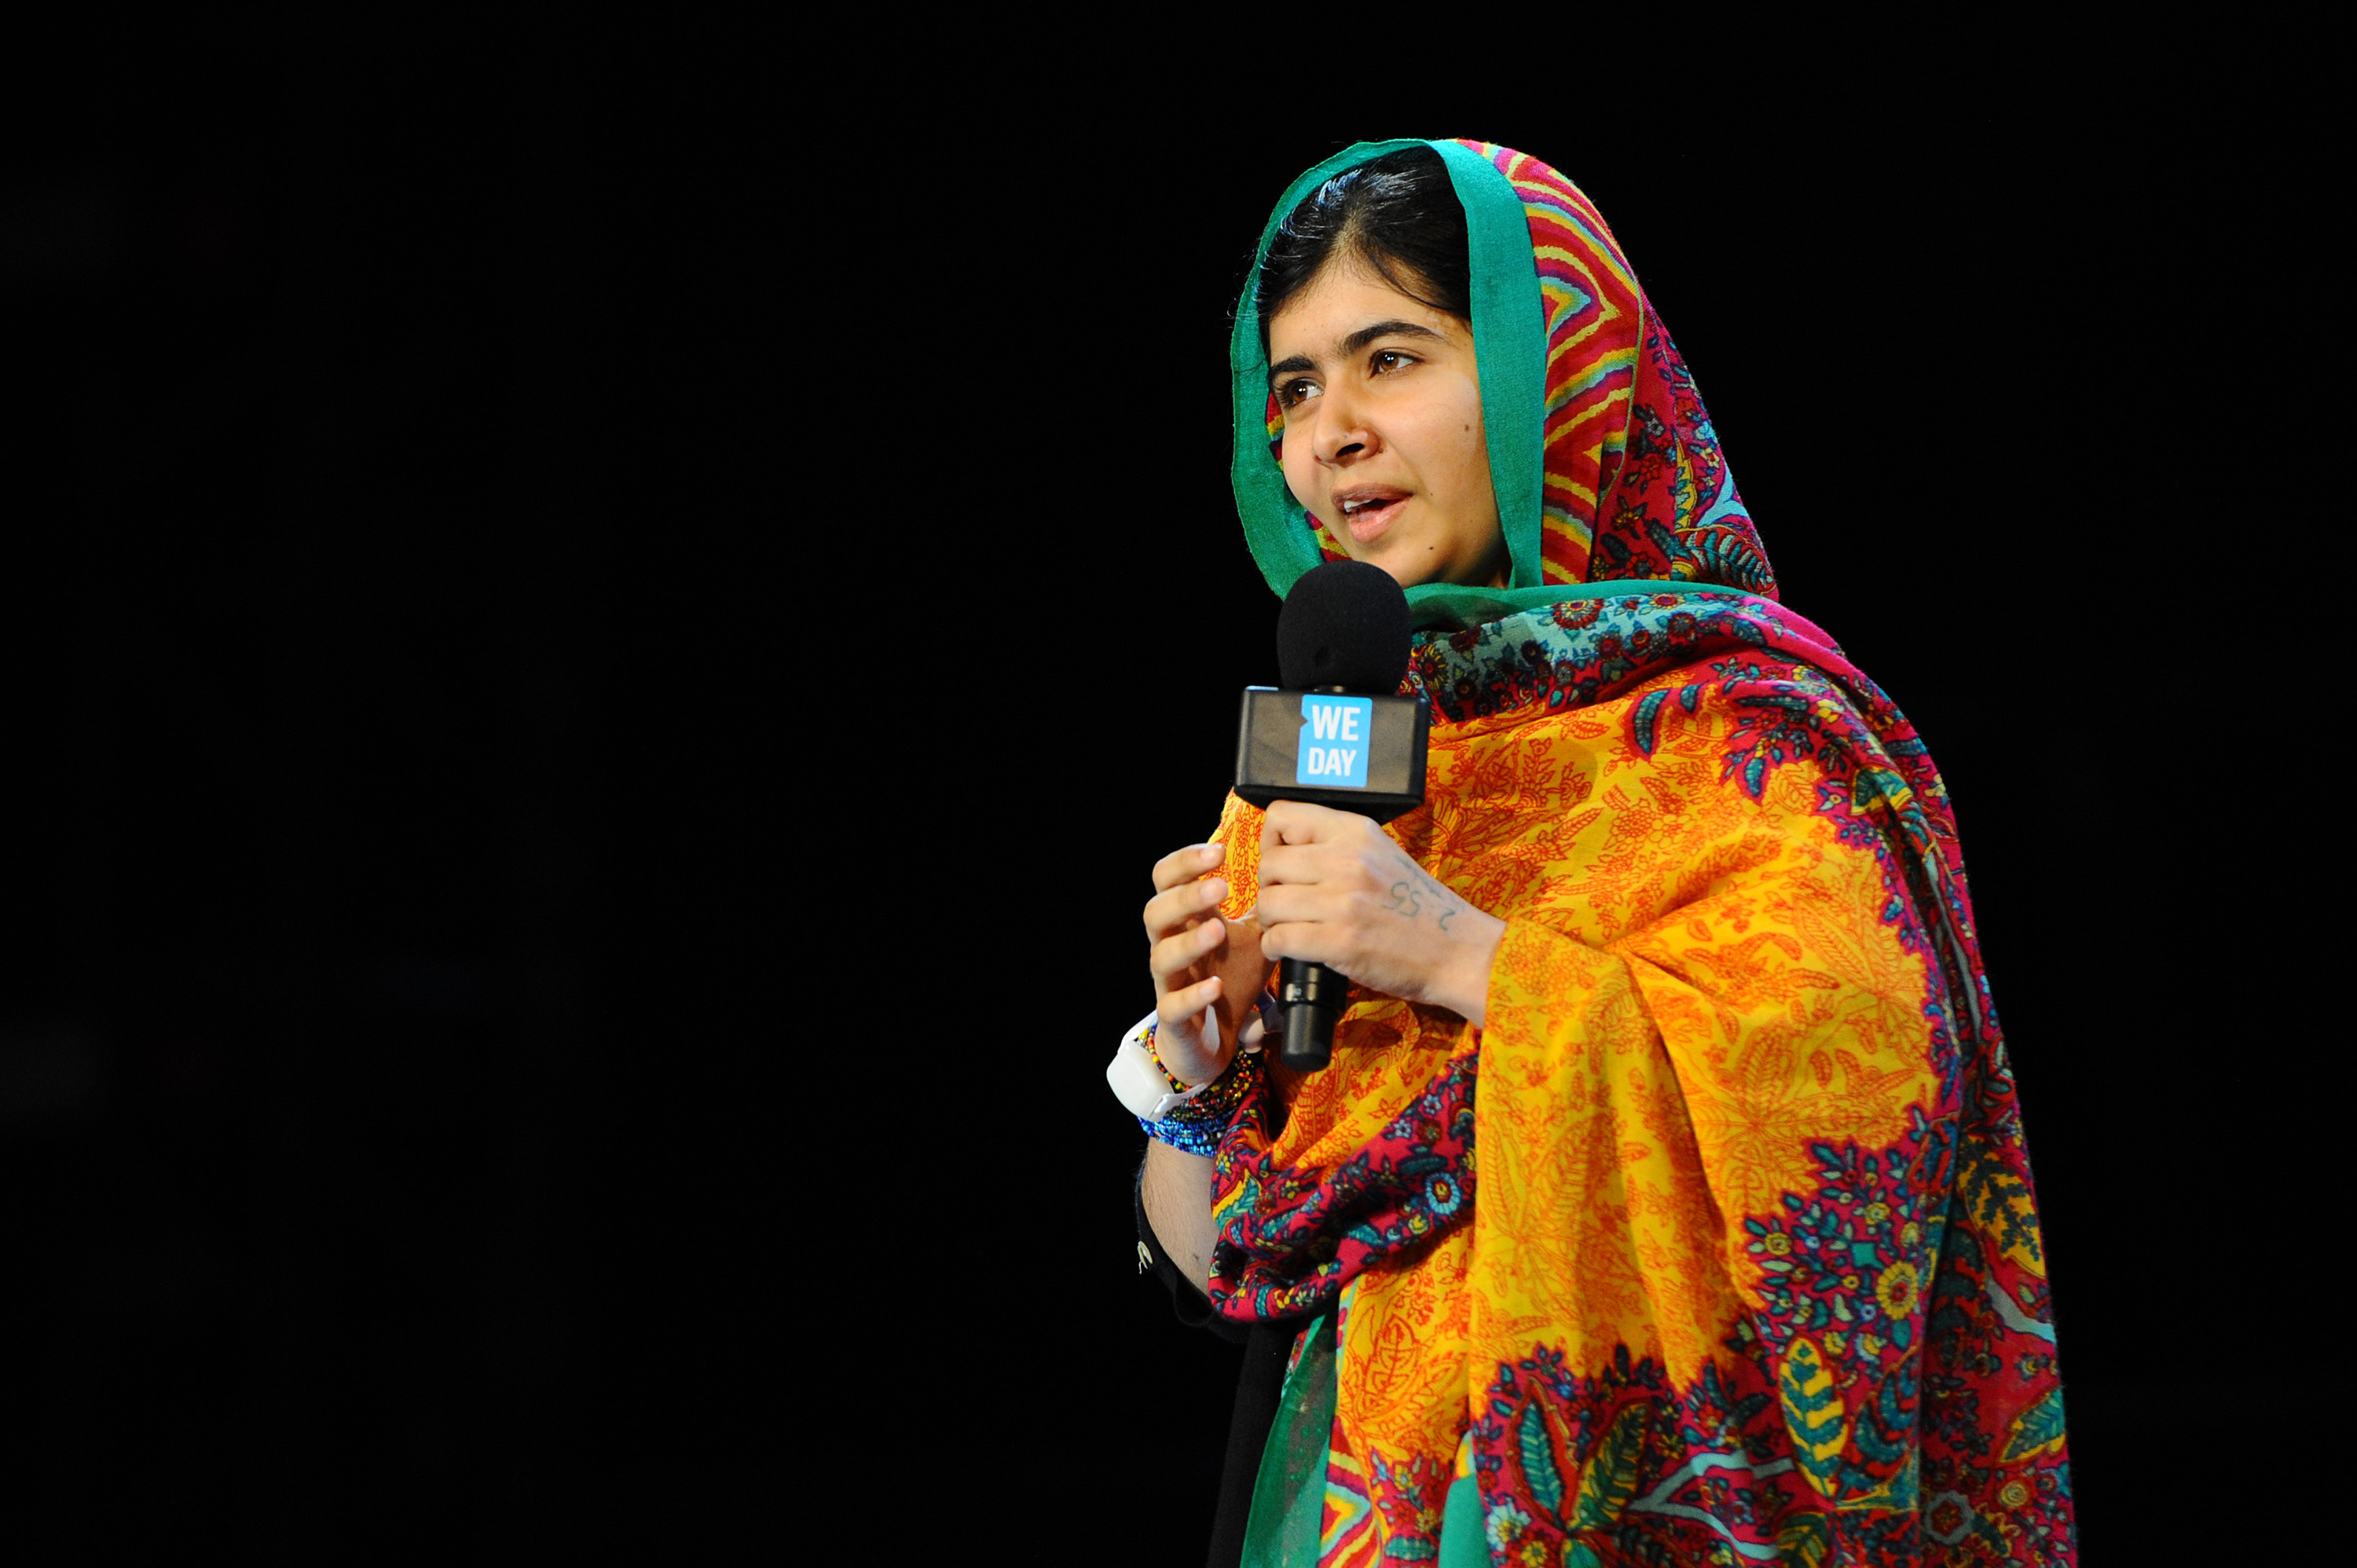 Malala Yousafzai attends as Free The Children hosts their debut UK global youth empowerment event, We Day at Wembley Arena on March 7, 2014 in London, England.